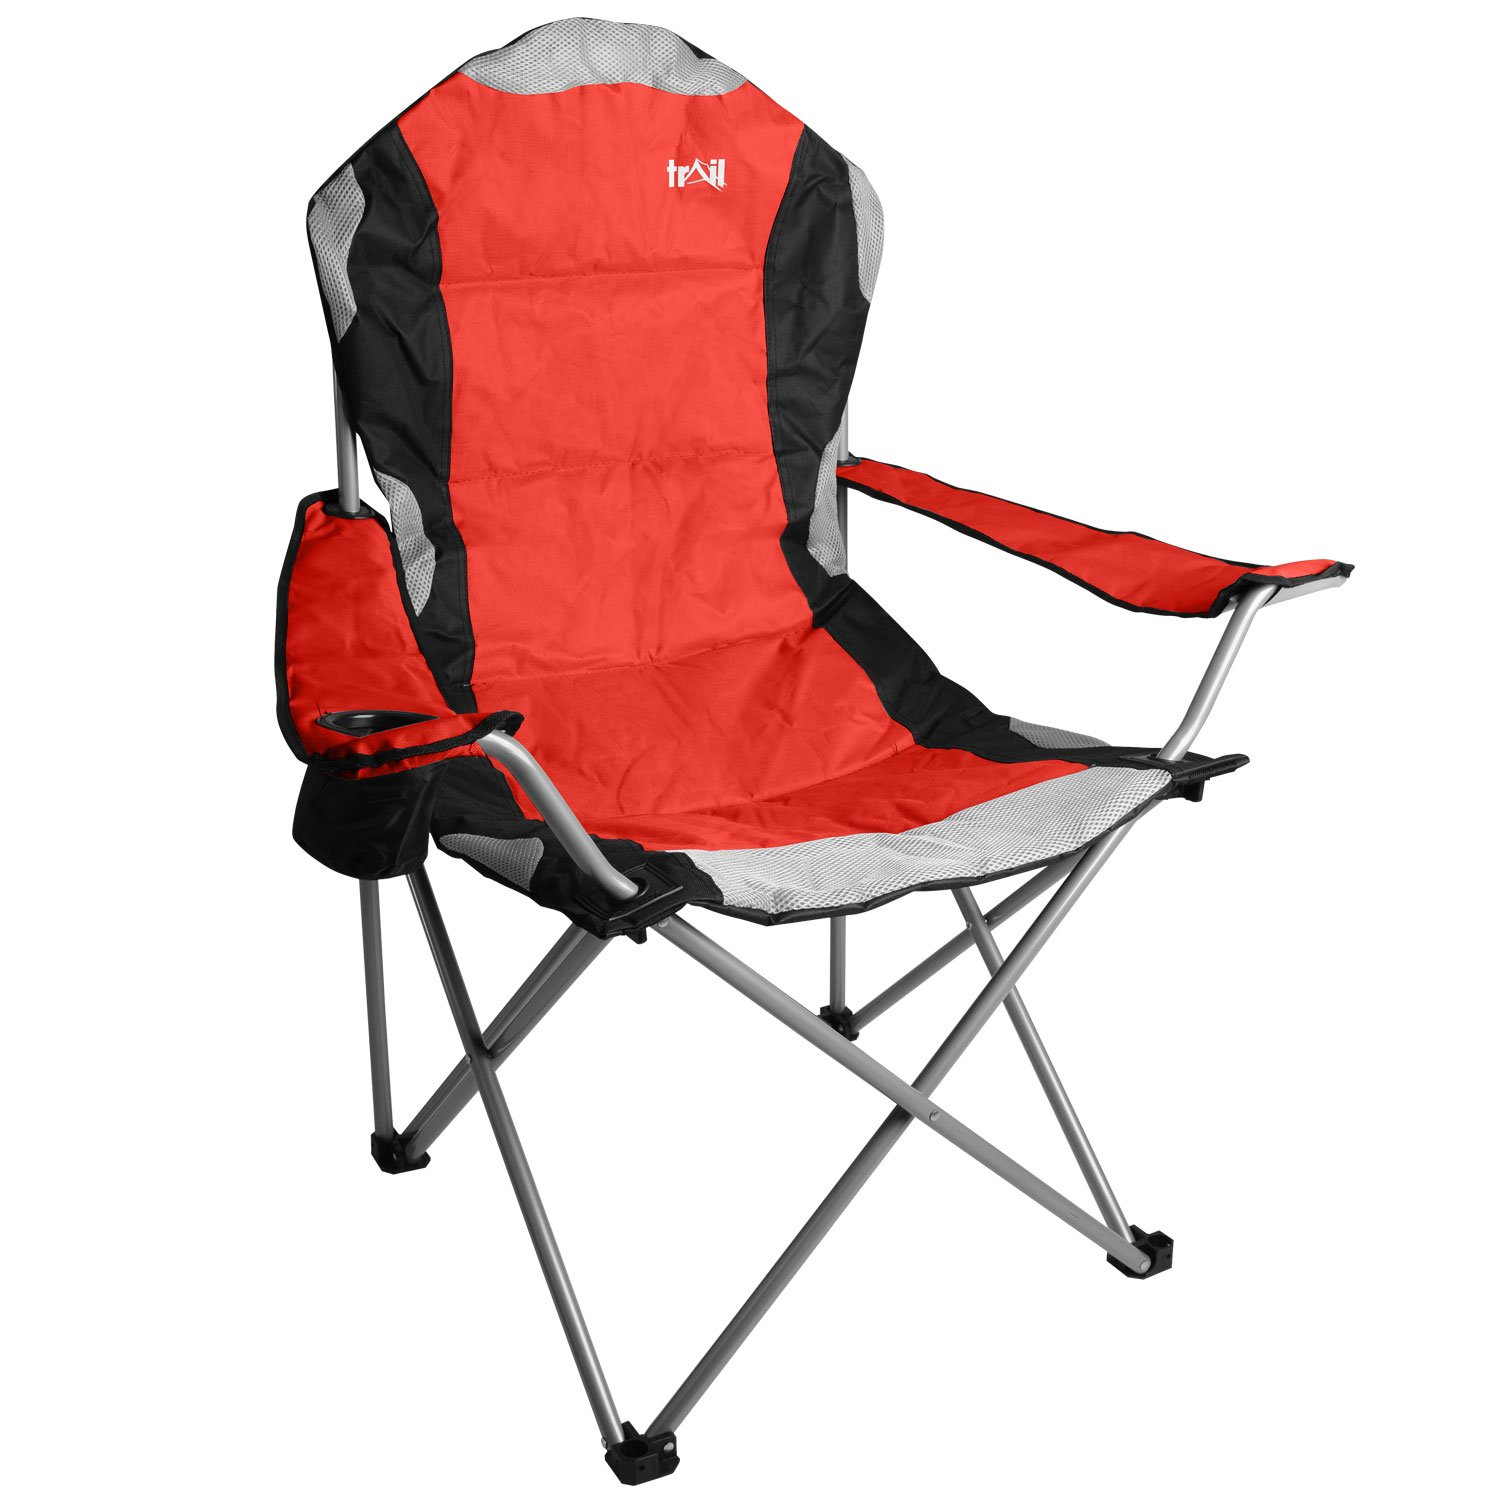 Kestrel Deluxe Padded Folding Chair Amazon Sports & Outdoors